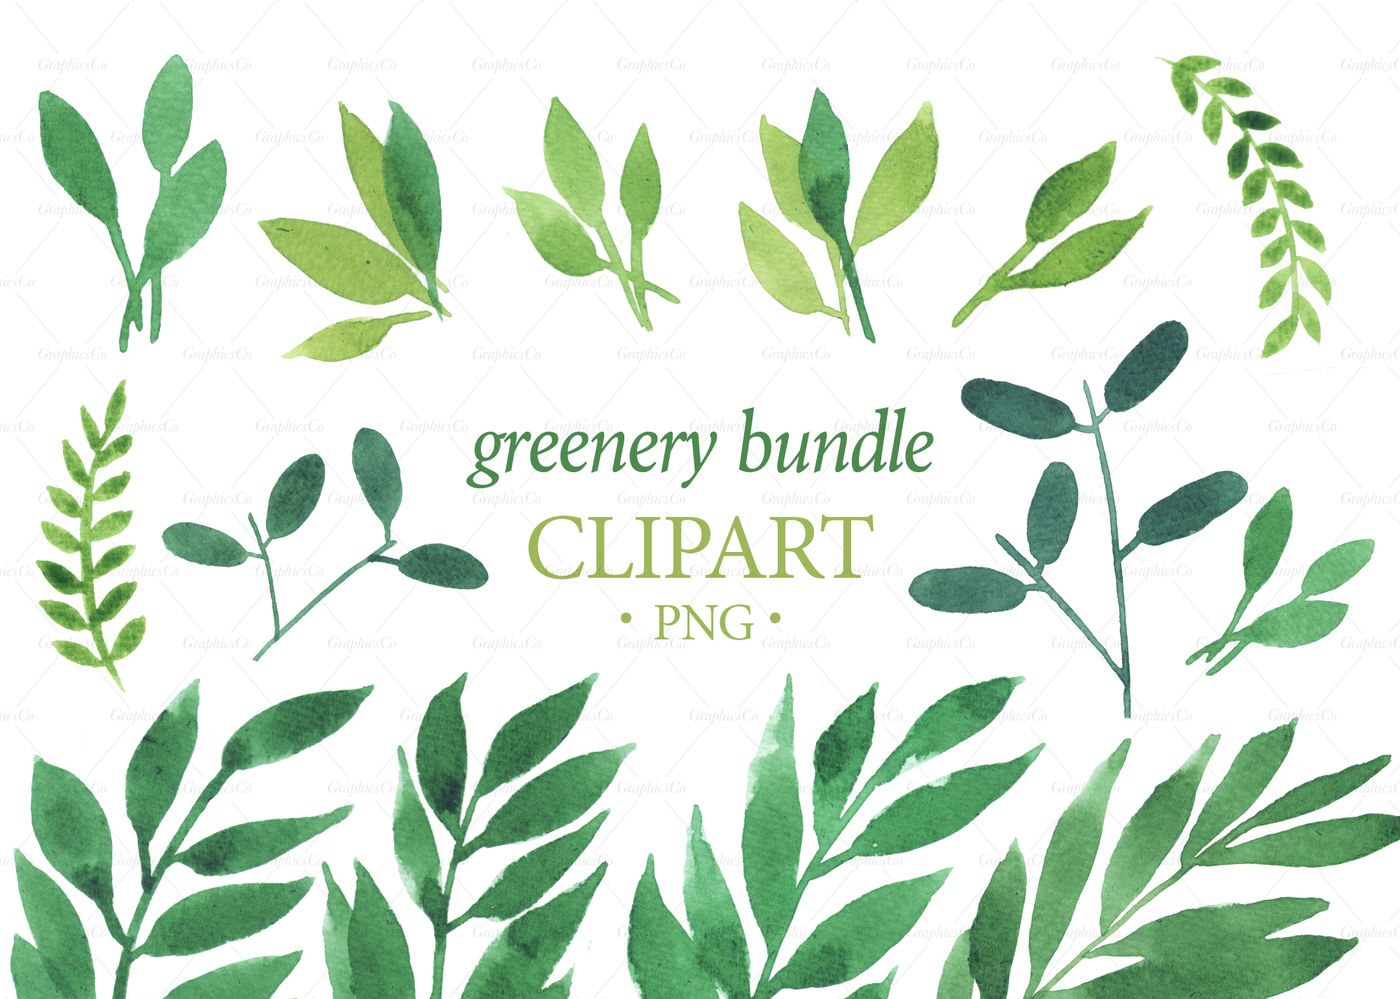 Leaf graphics clipart png transparent library GREENERY BUNDLE png. Greenery watercolor graphics. decoration card ... png transparent library